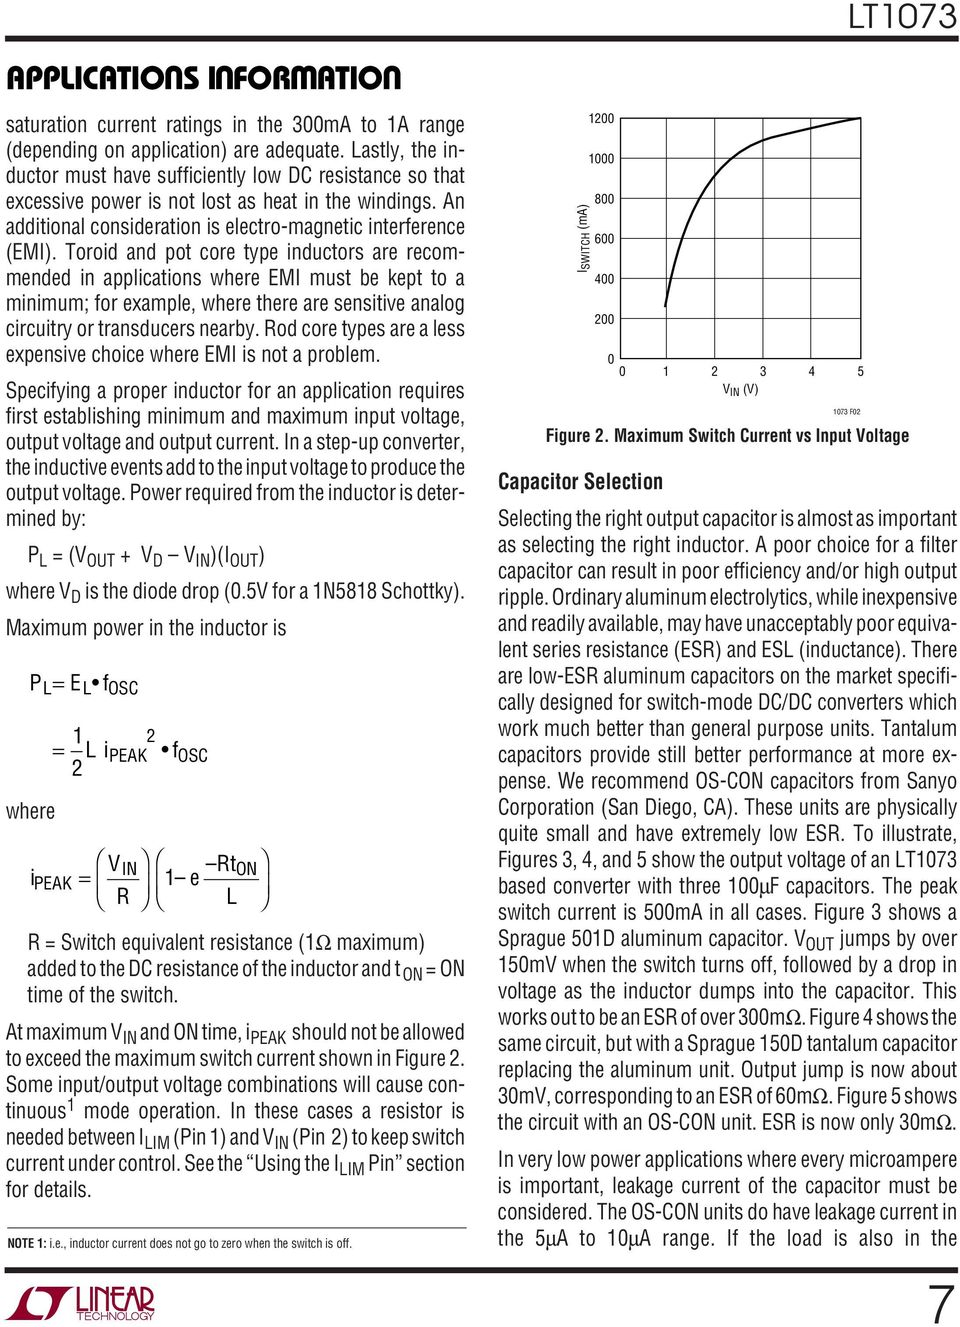 Toroid and pot core type inductors are recommended in applications where EMI must be kept to a minimum; for example, where there are sensitive analog circuitry or transducers nearby.